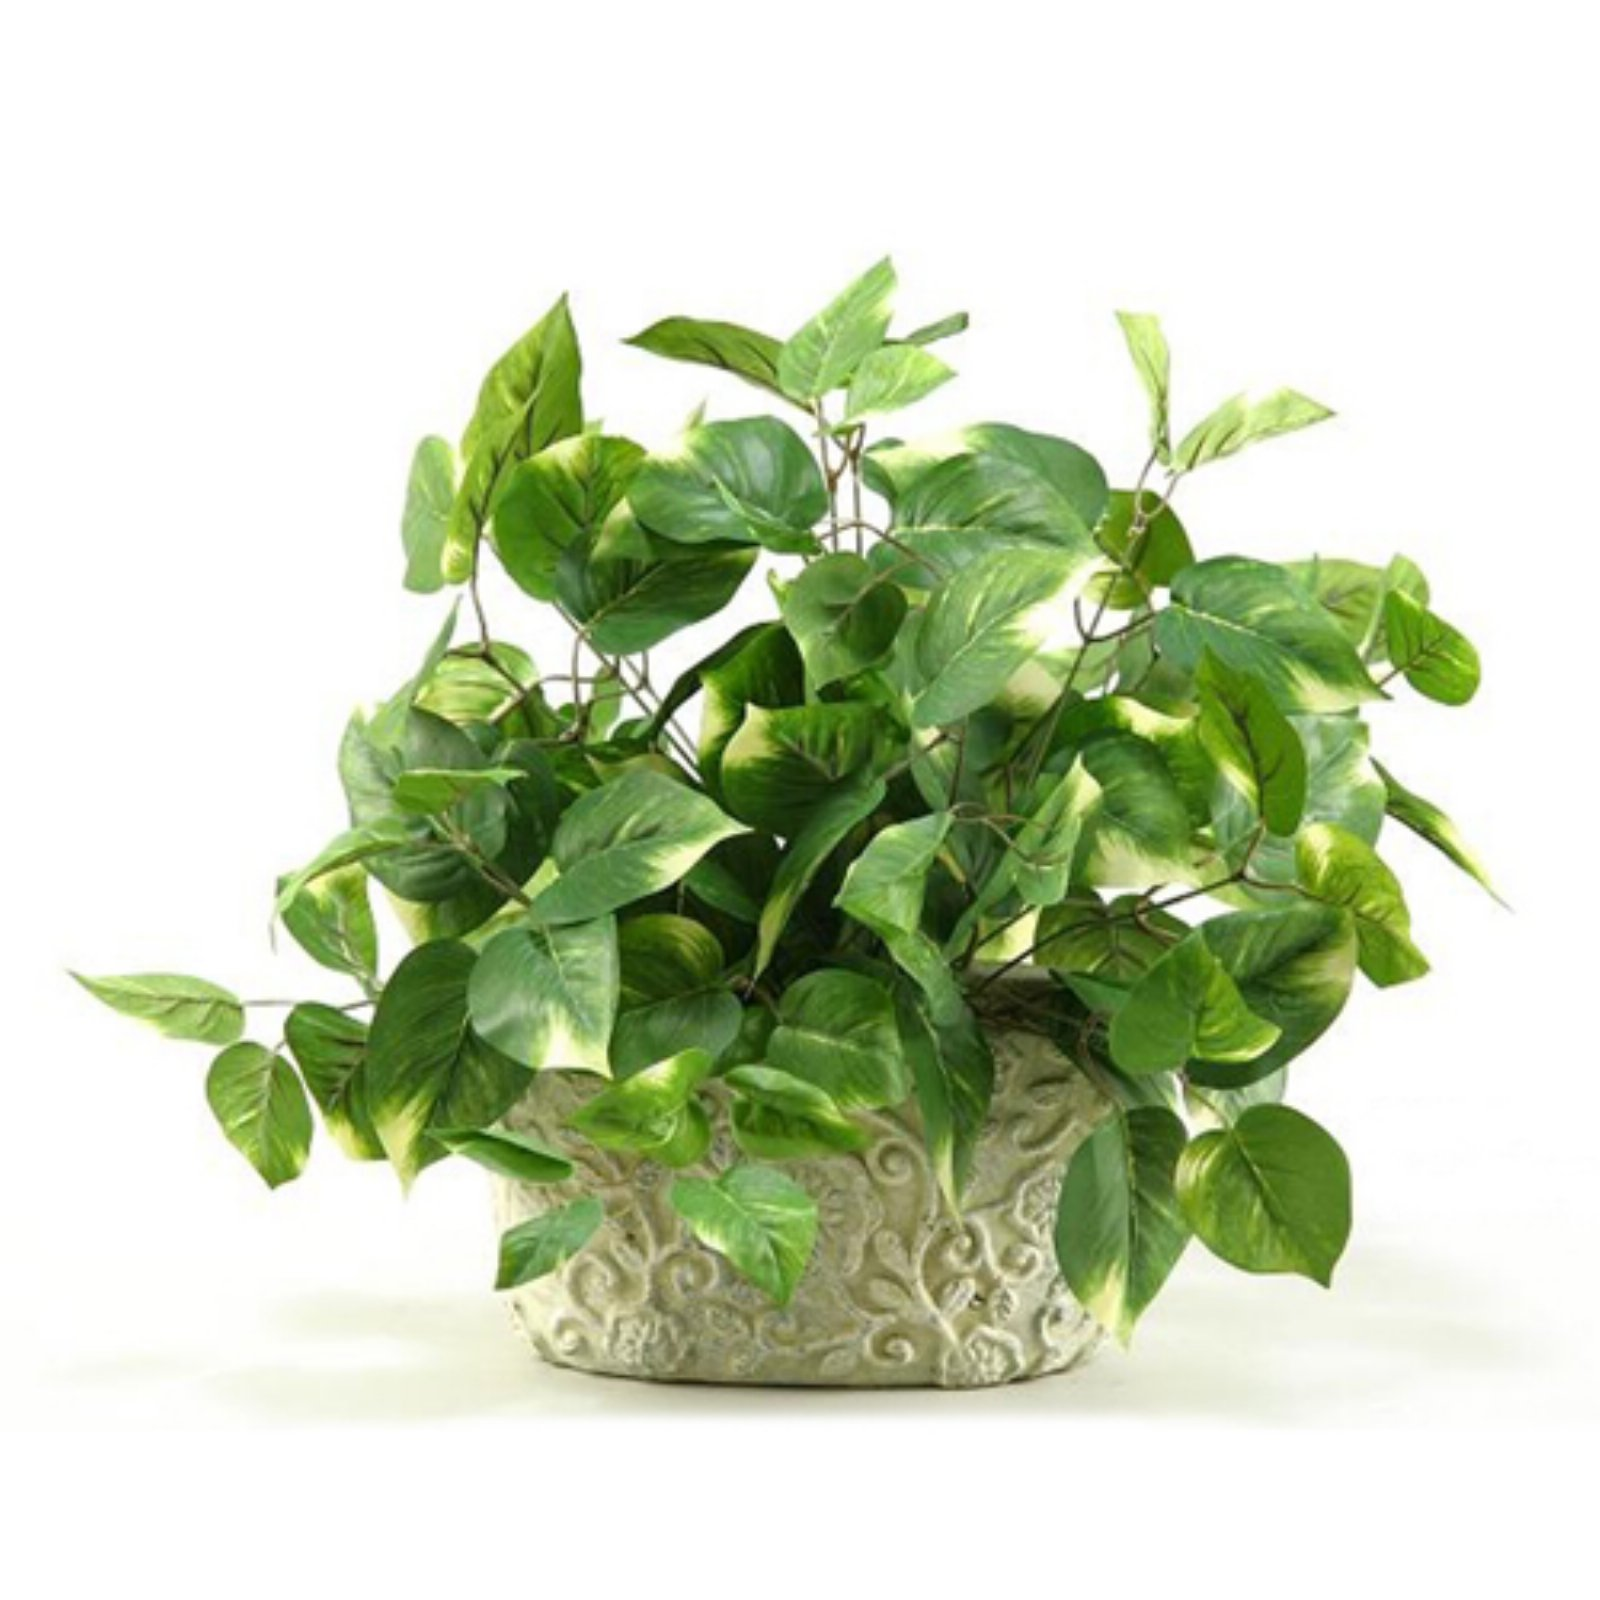 D&W Silks Pothos in Oblong Ceramic Planter